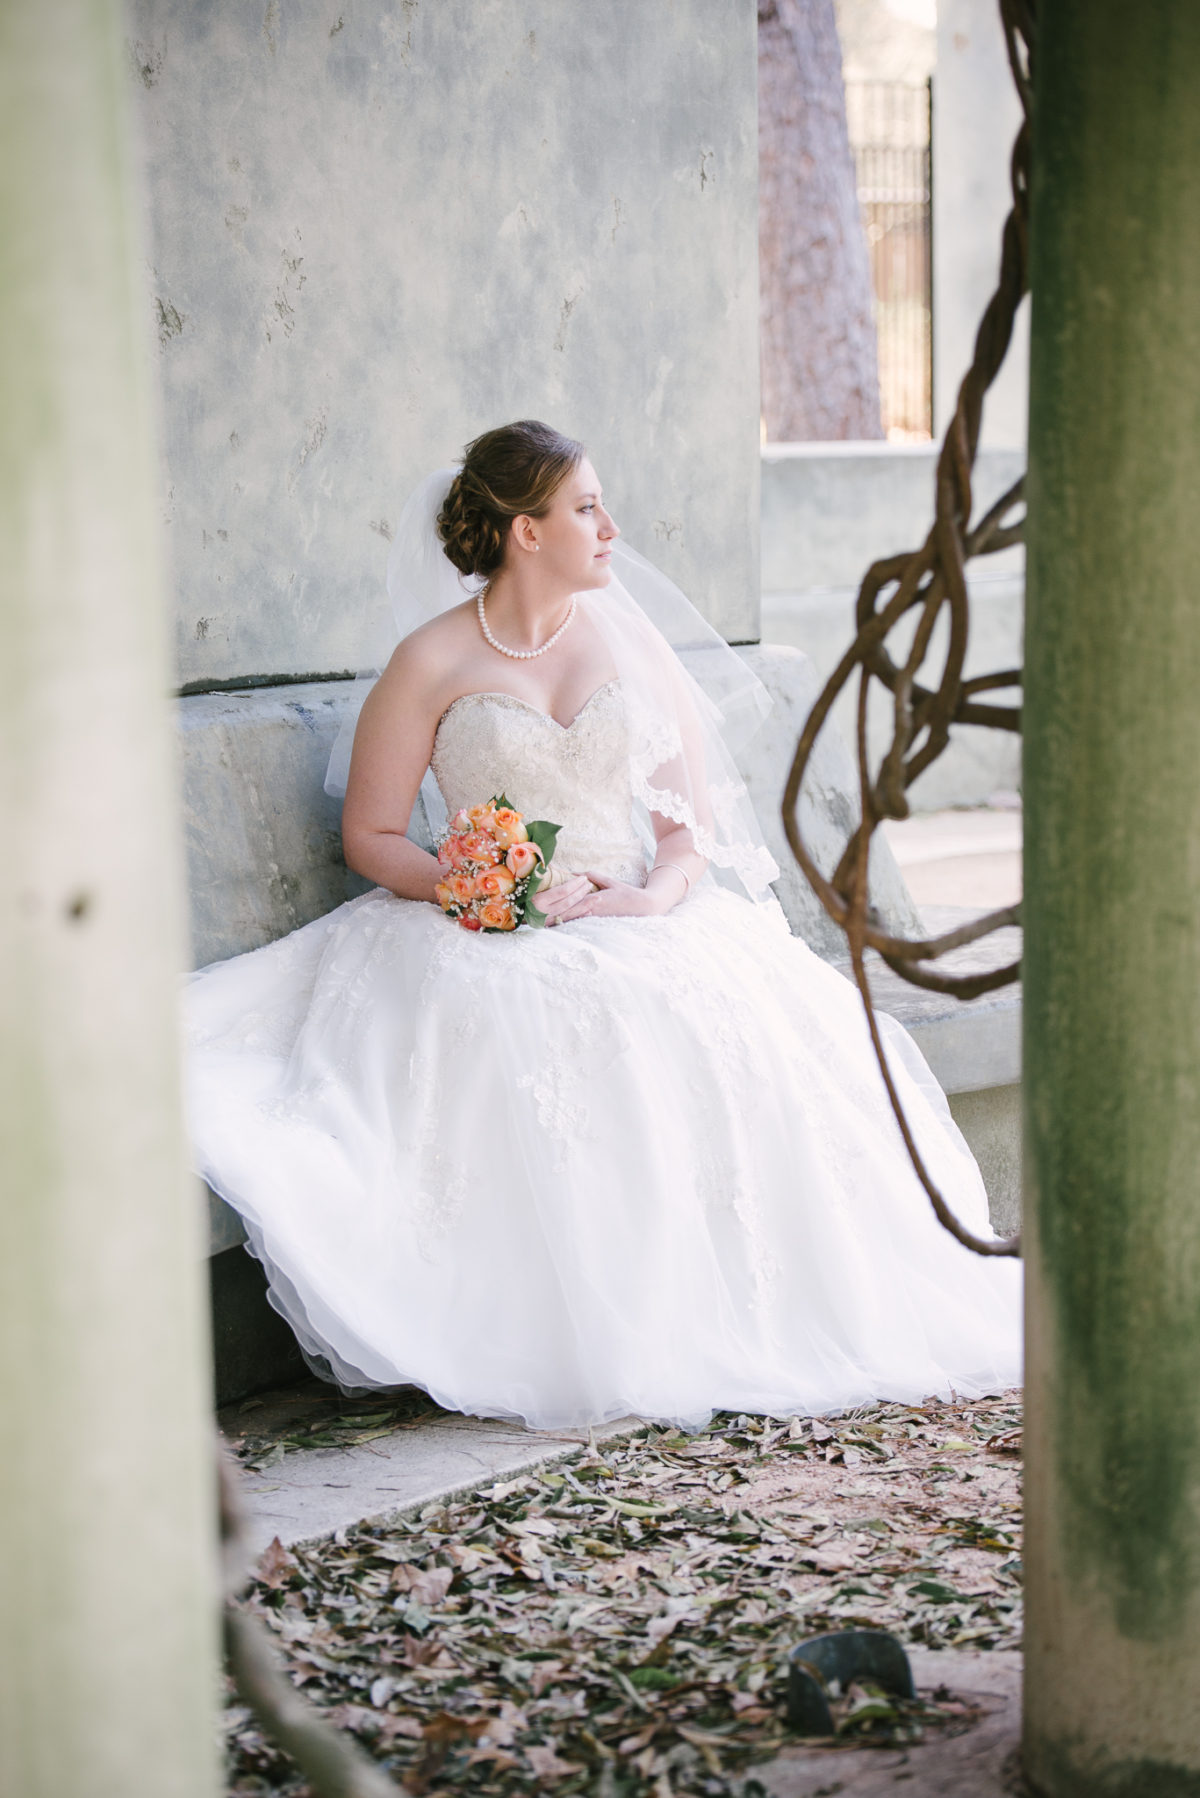 Sarah | Bridals in Hermann Park